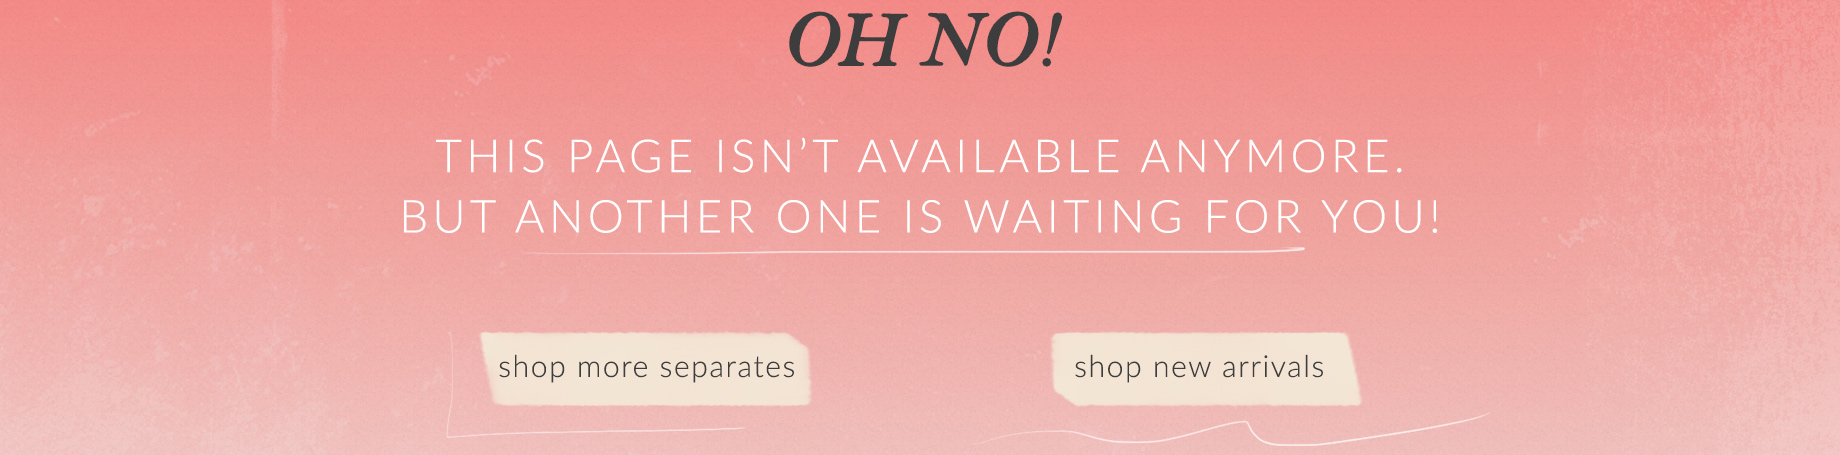 Oh no! This is awkward...This page is no longer available.